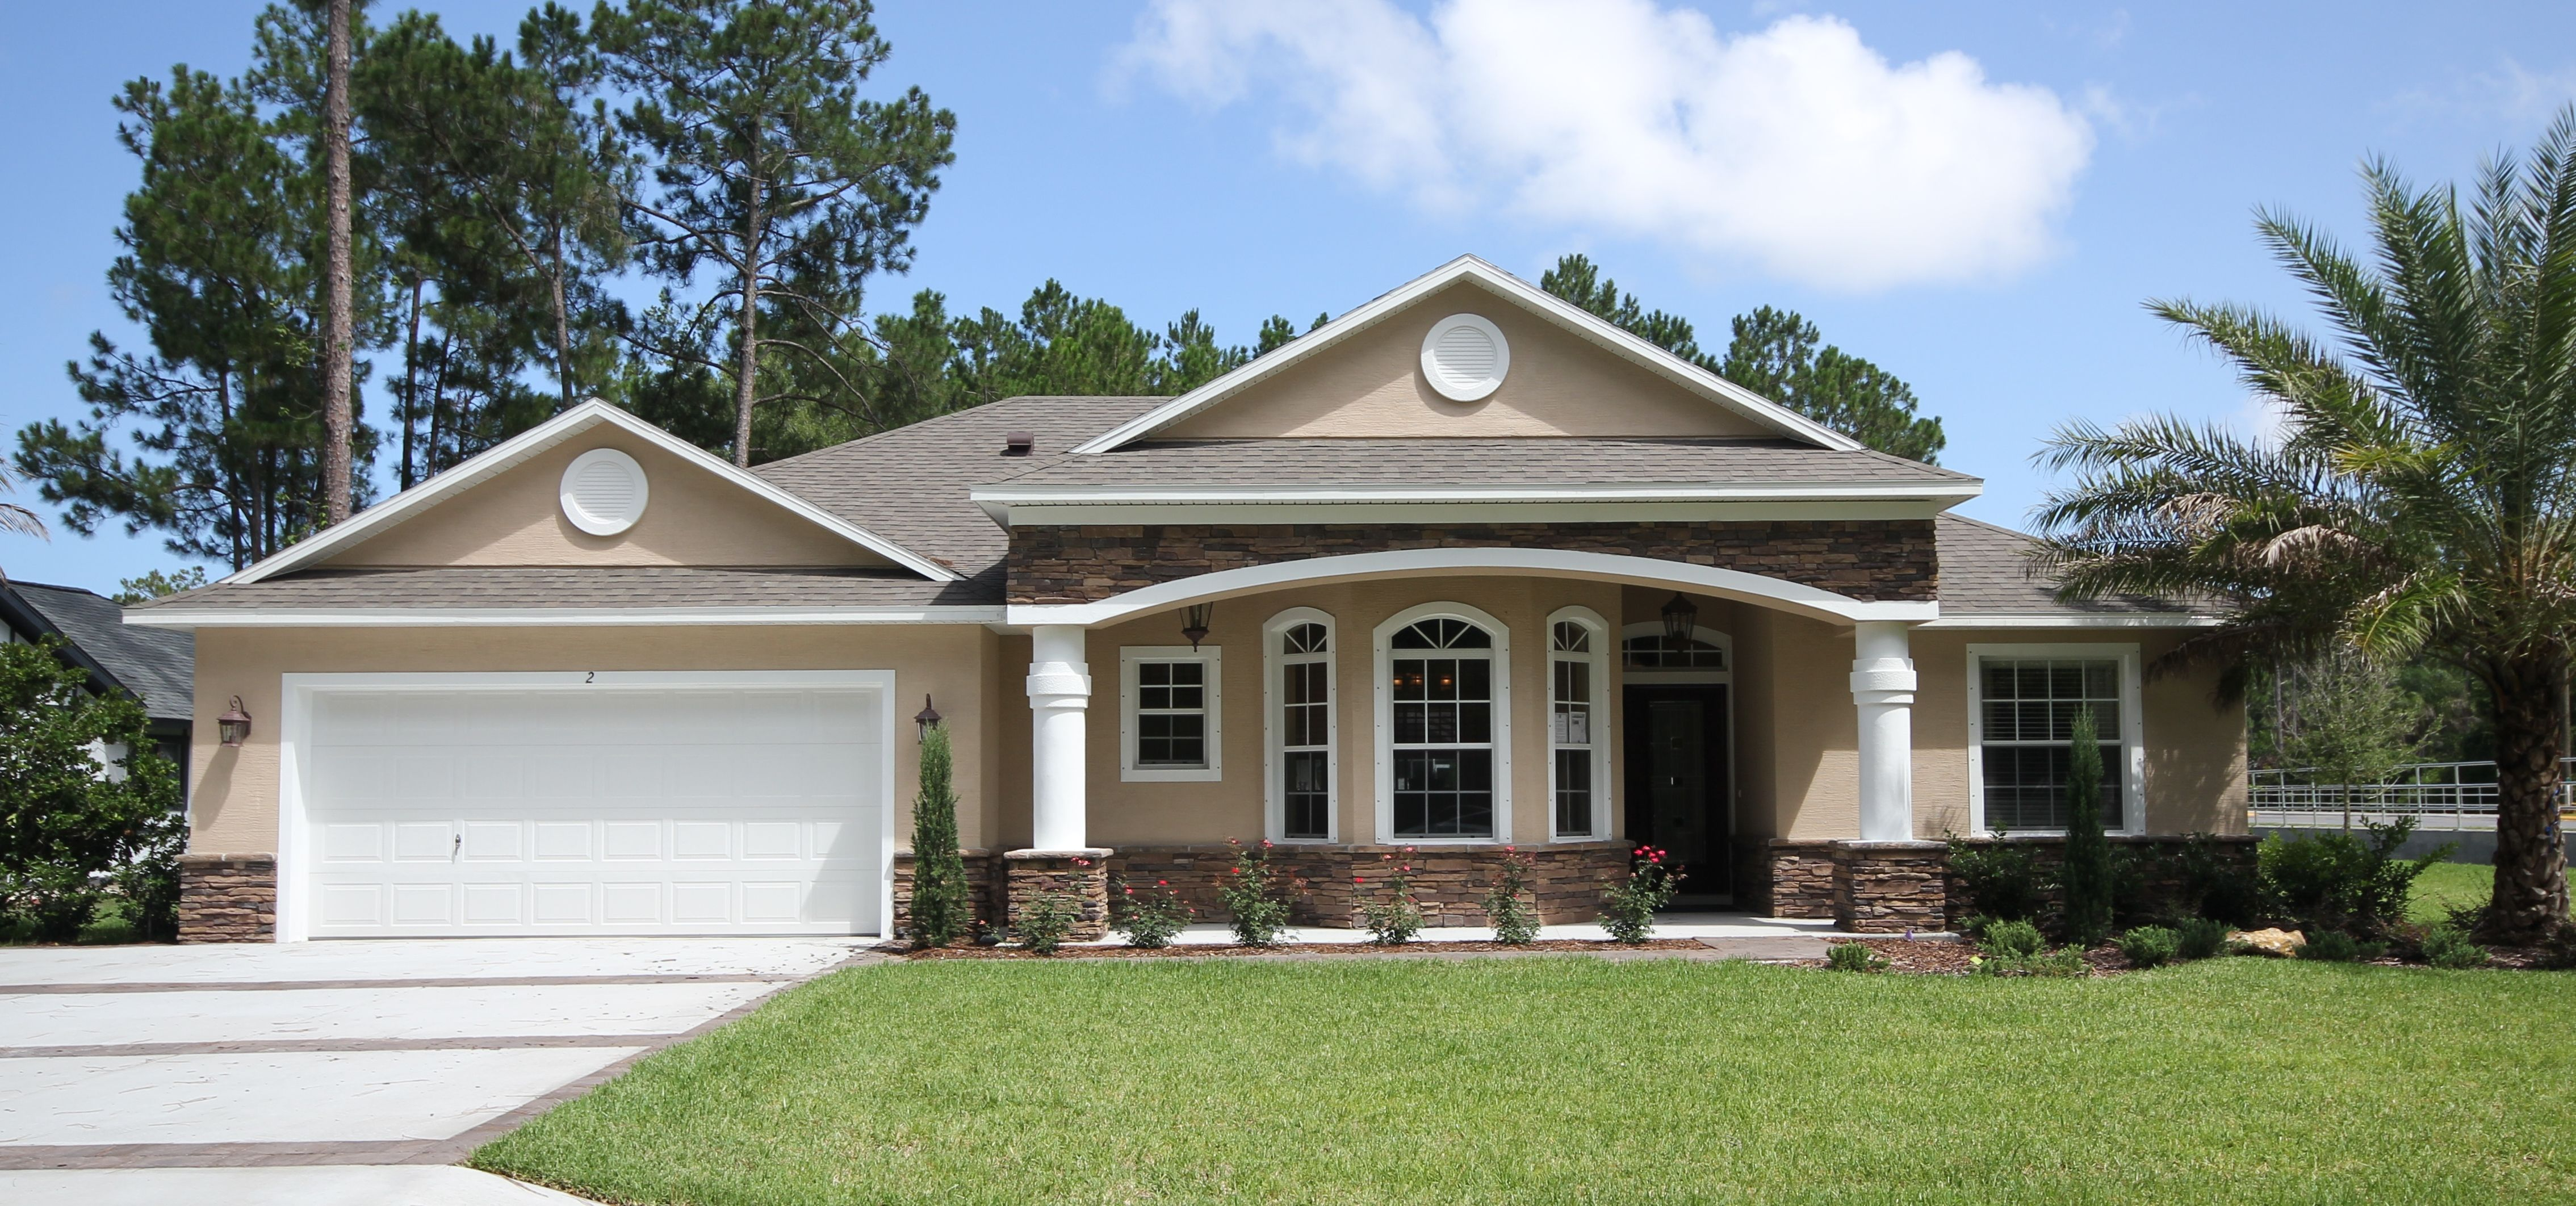 exterior house colors for florida. house exterior colors for florida